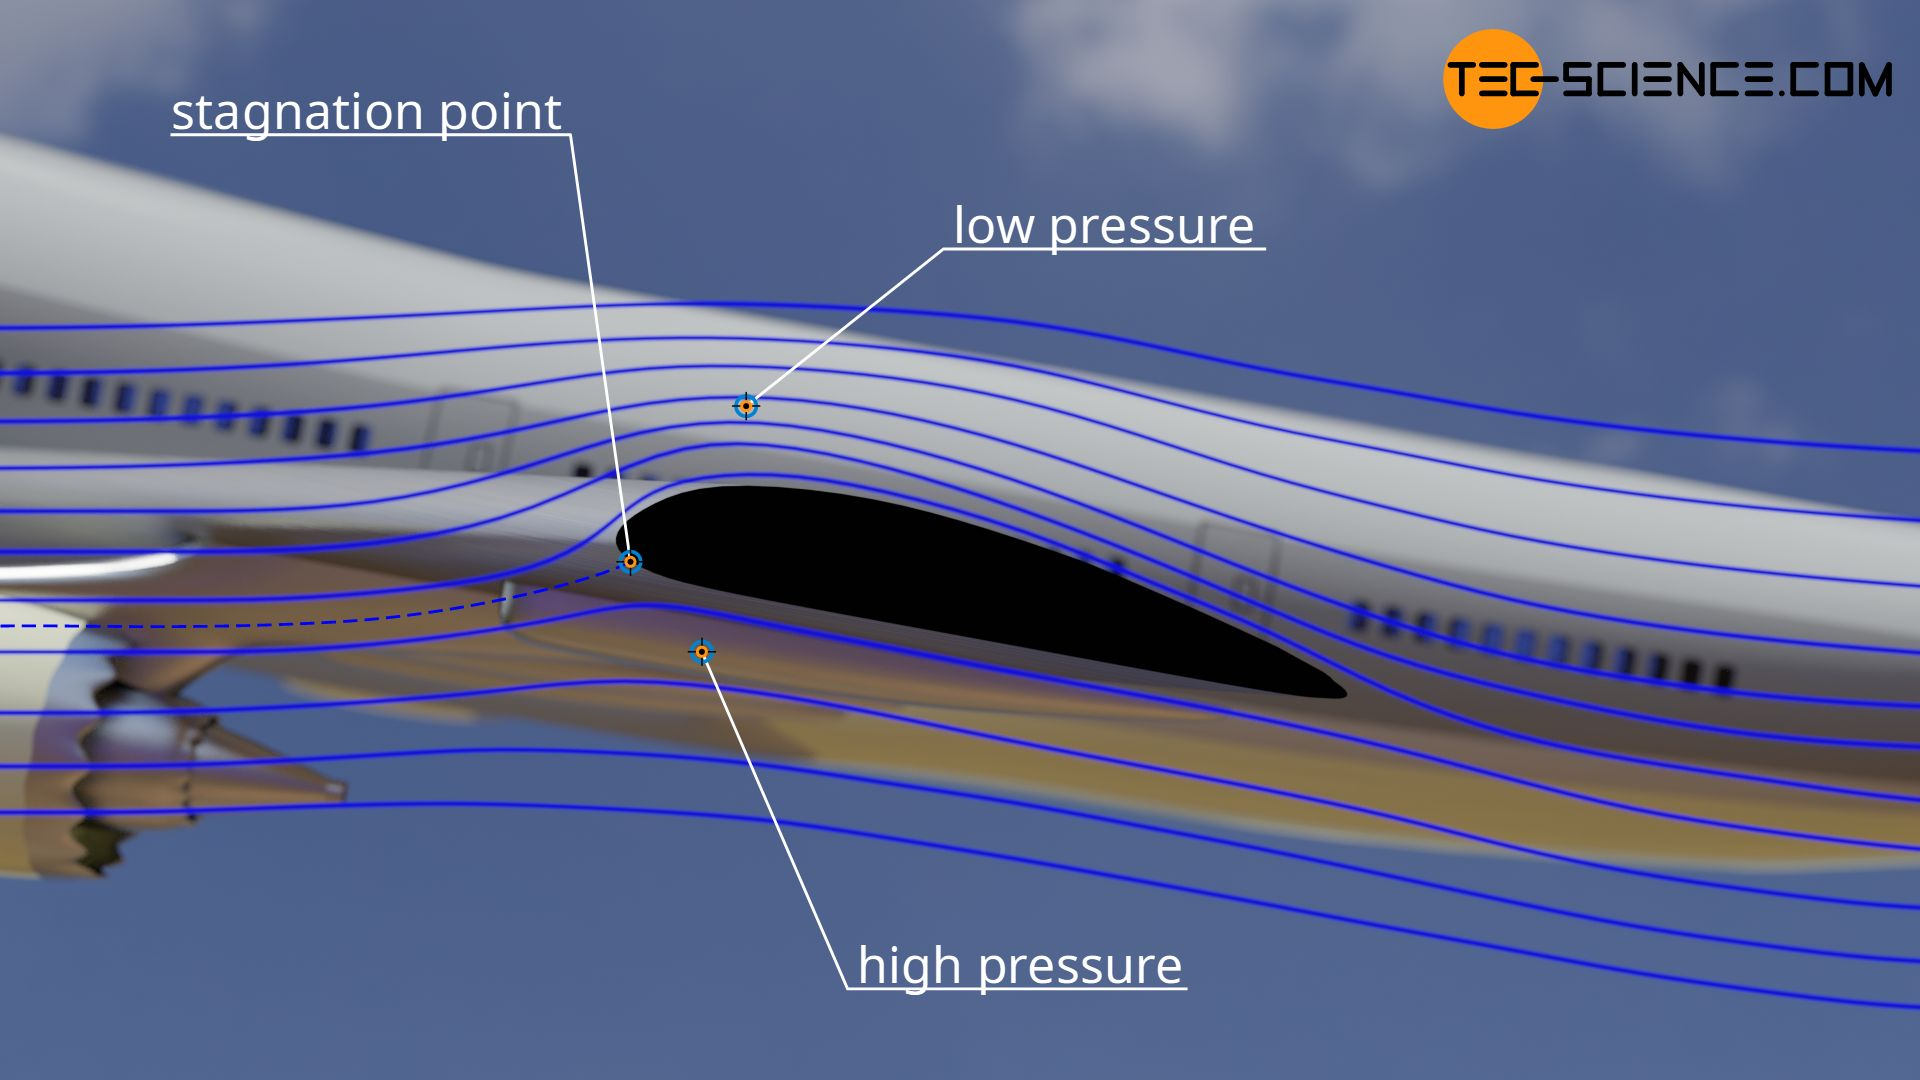 Acceleration of the air when flowing around a wing and the resulting decrease in pressure